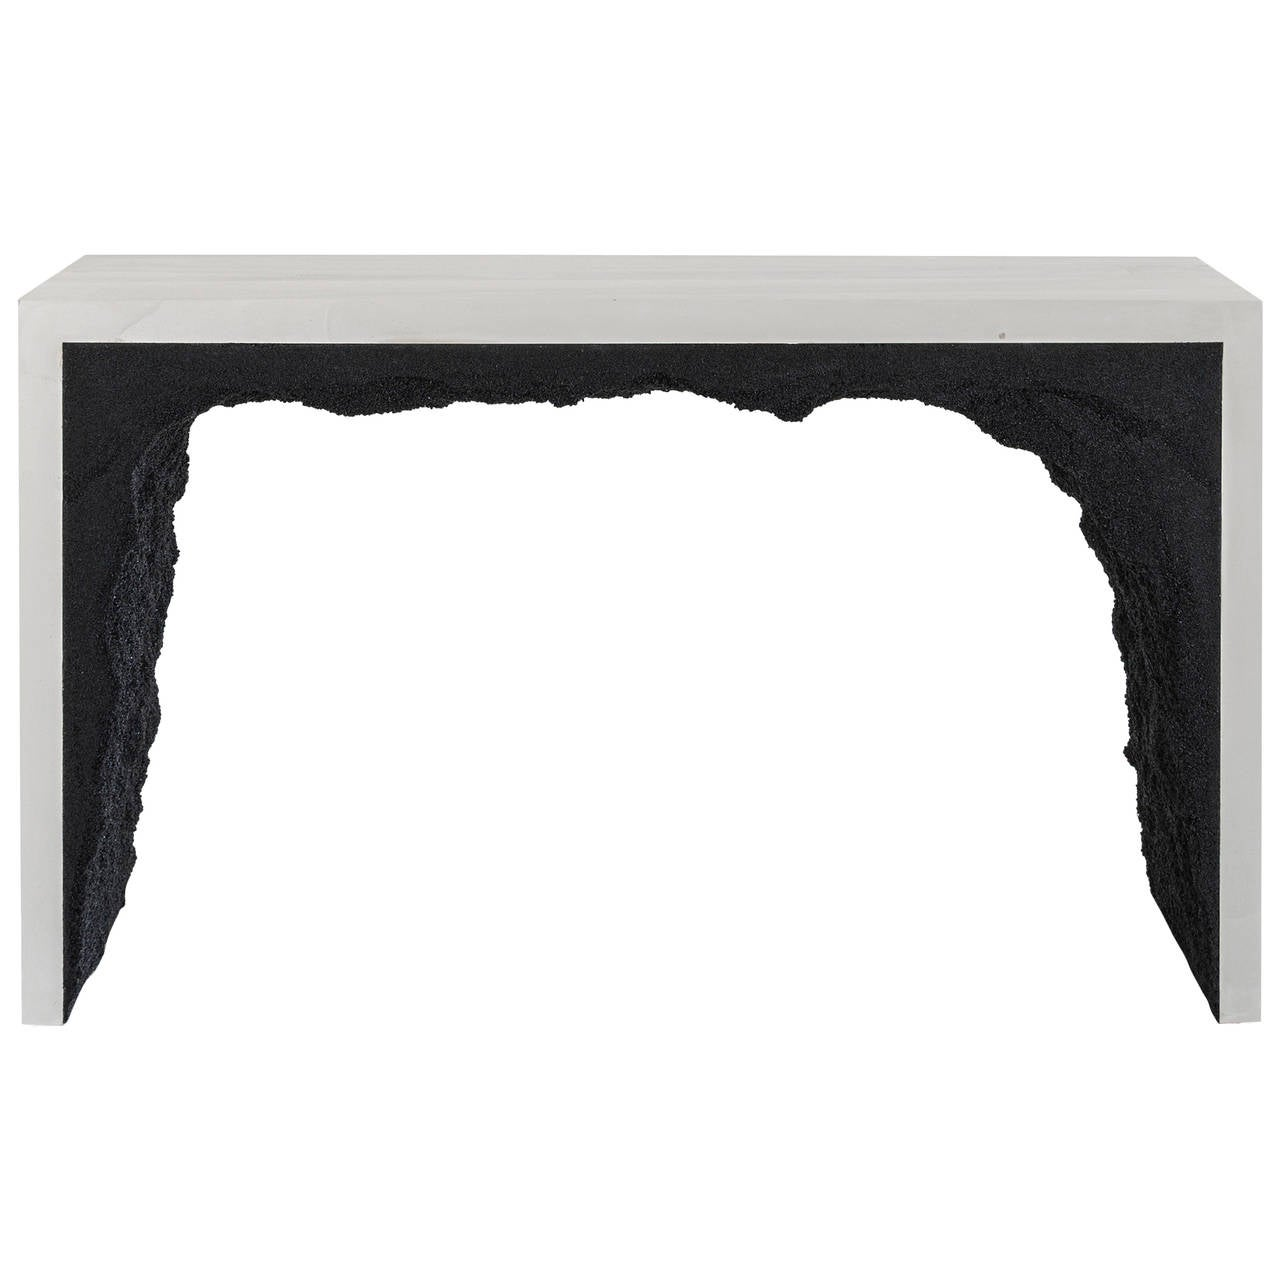 1st Dibs 1st dibs 10 Incredible Modern Console Tables on 1st Dibs 3116392 l